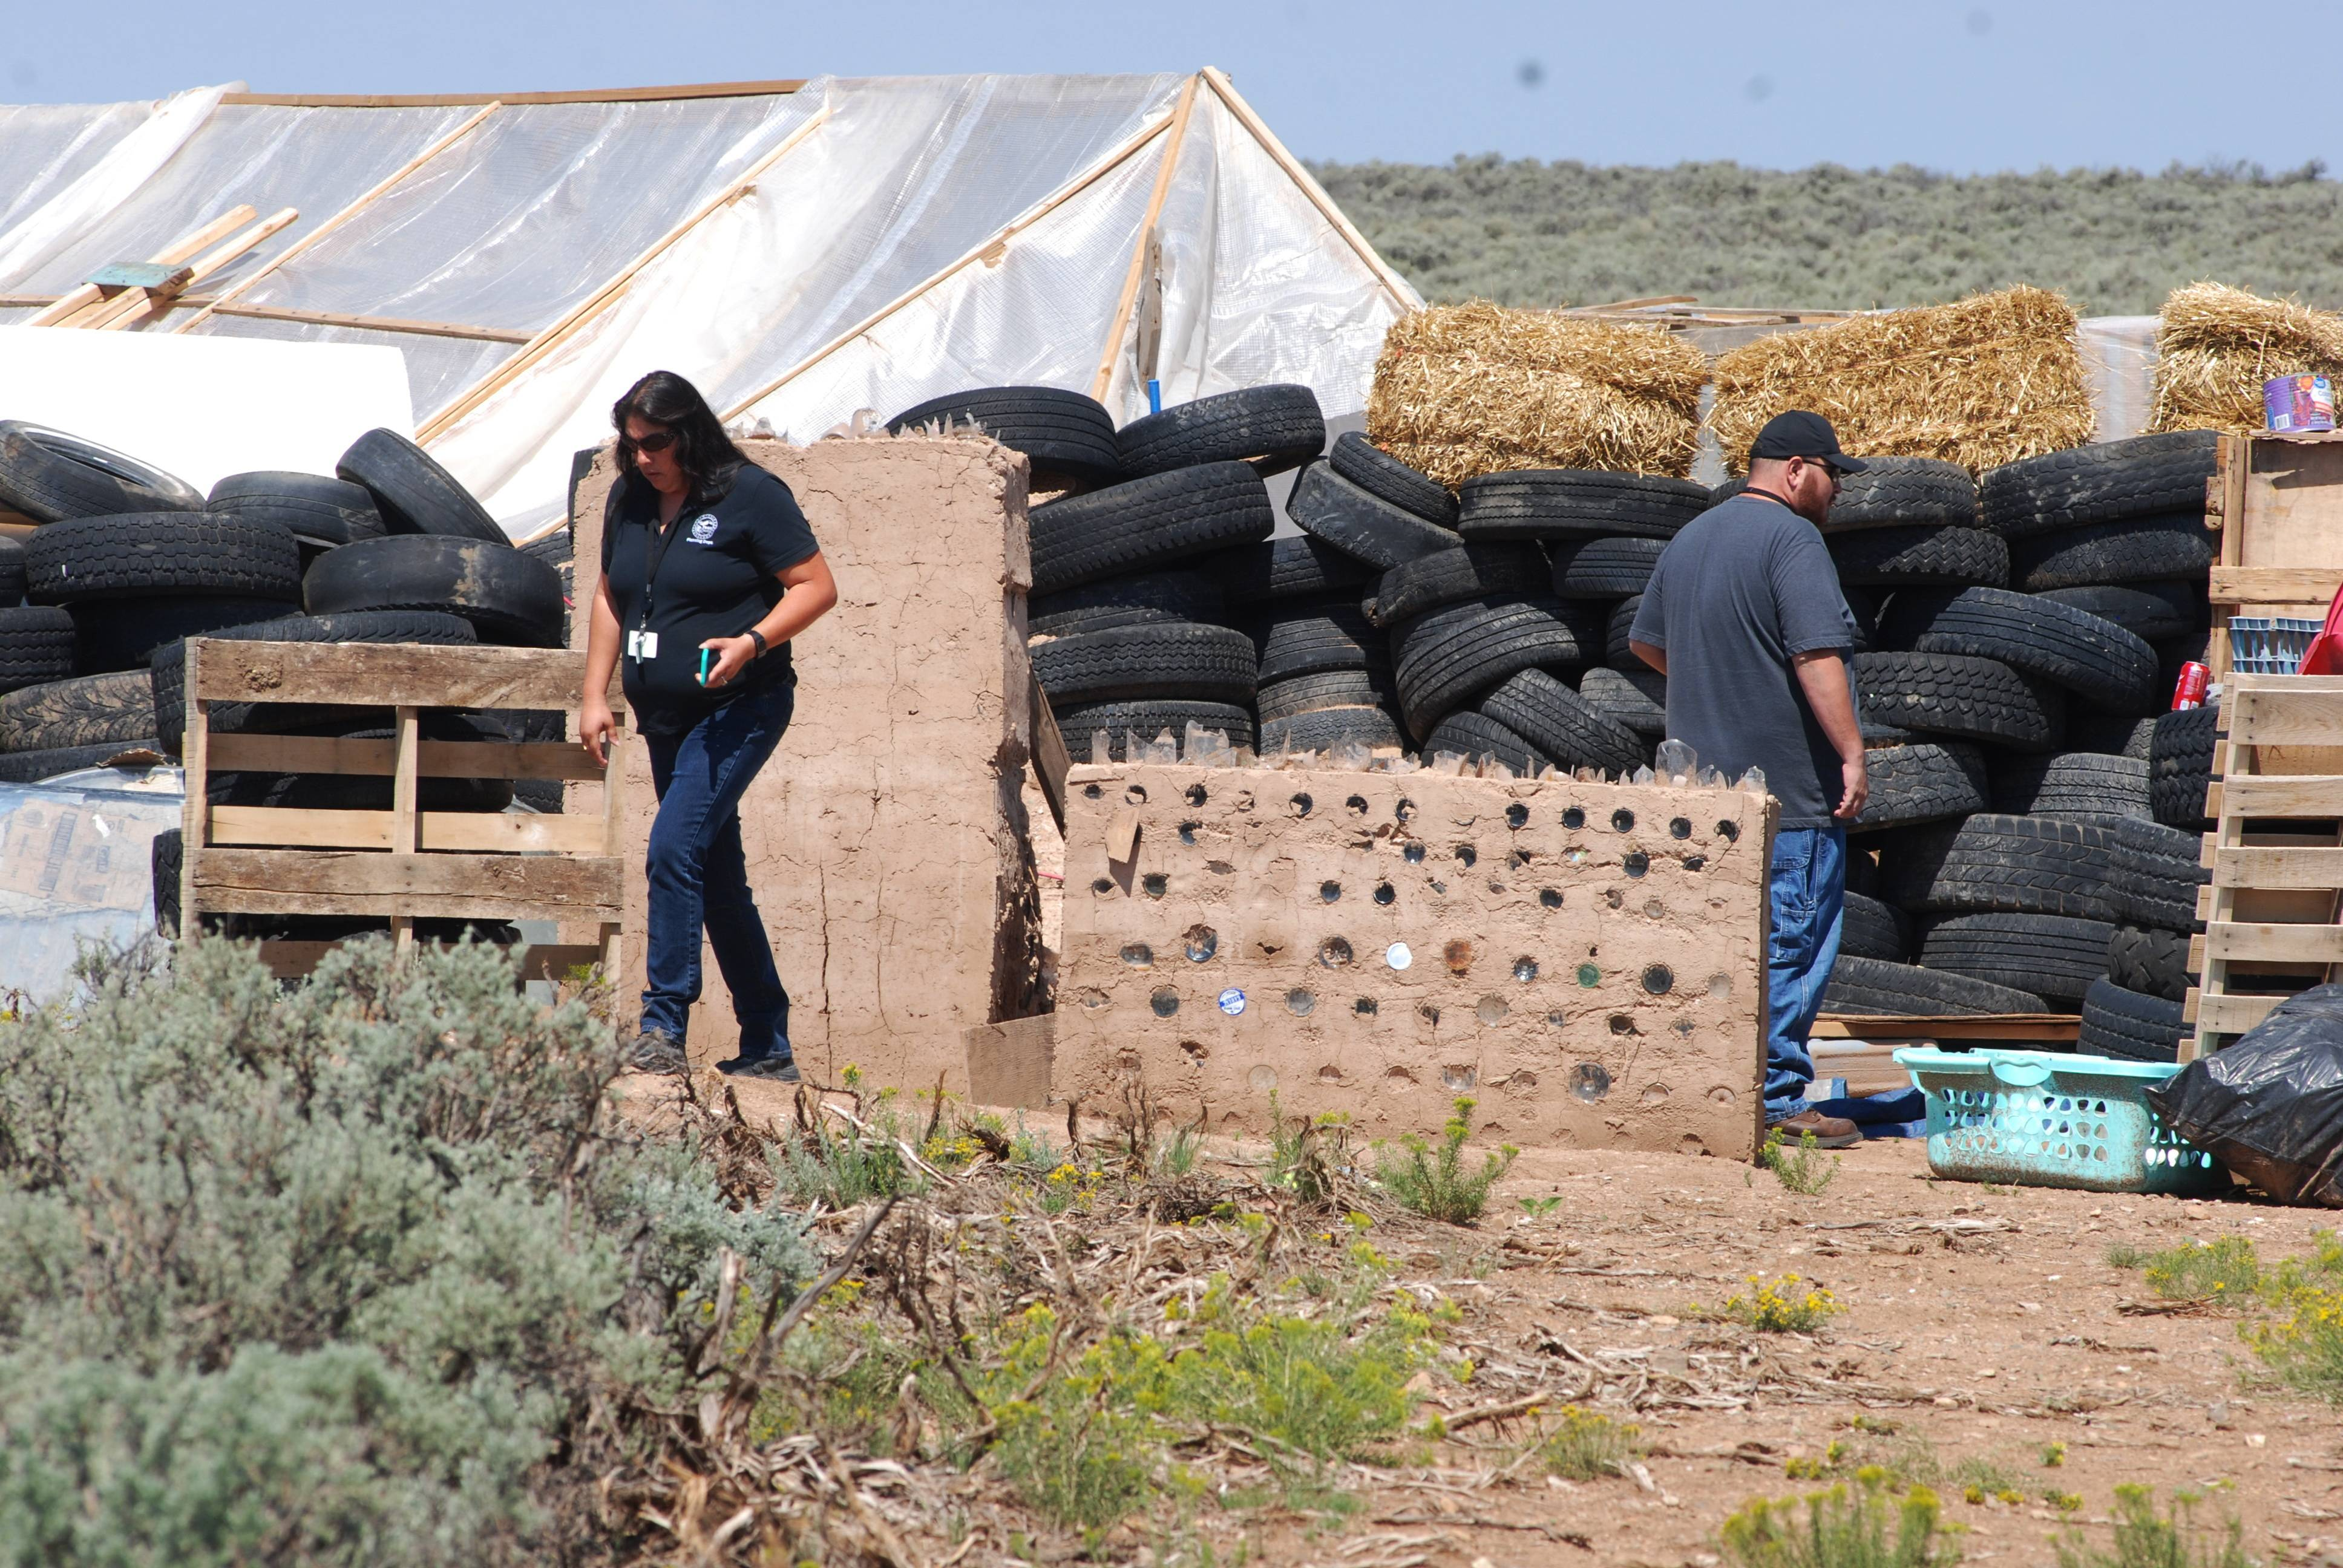 Remains Of Unidentified Boy Found At New Mexico Compound